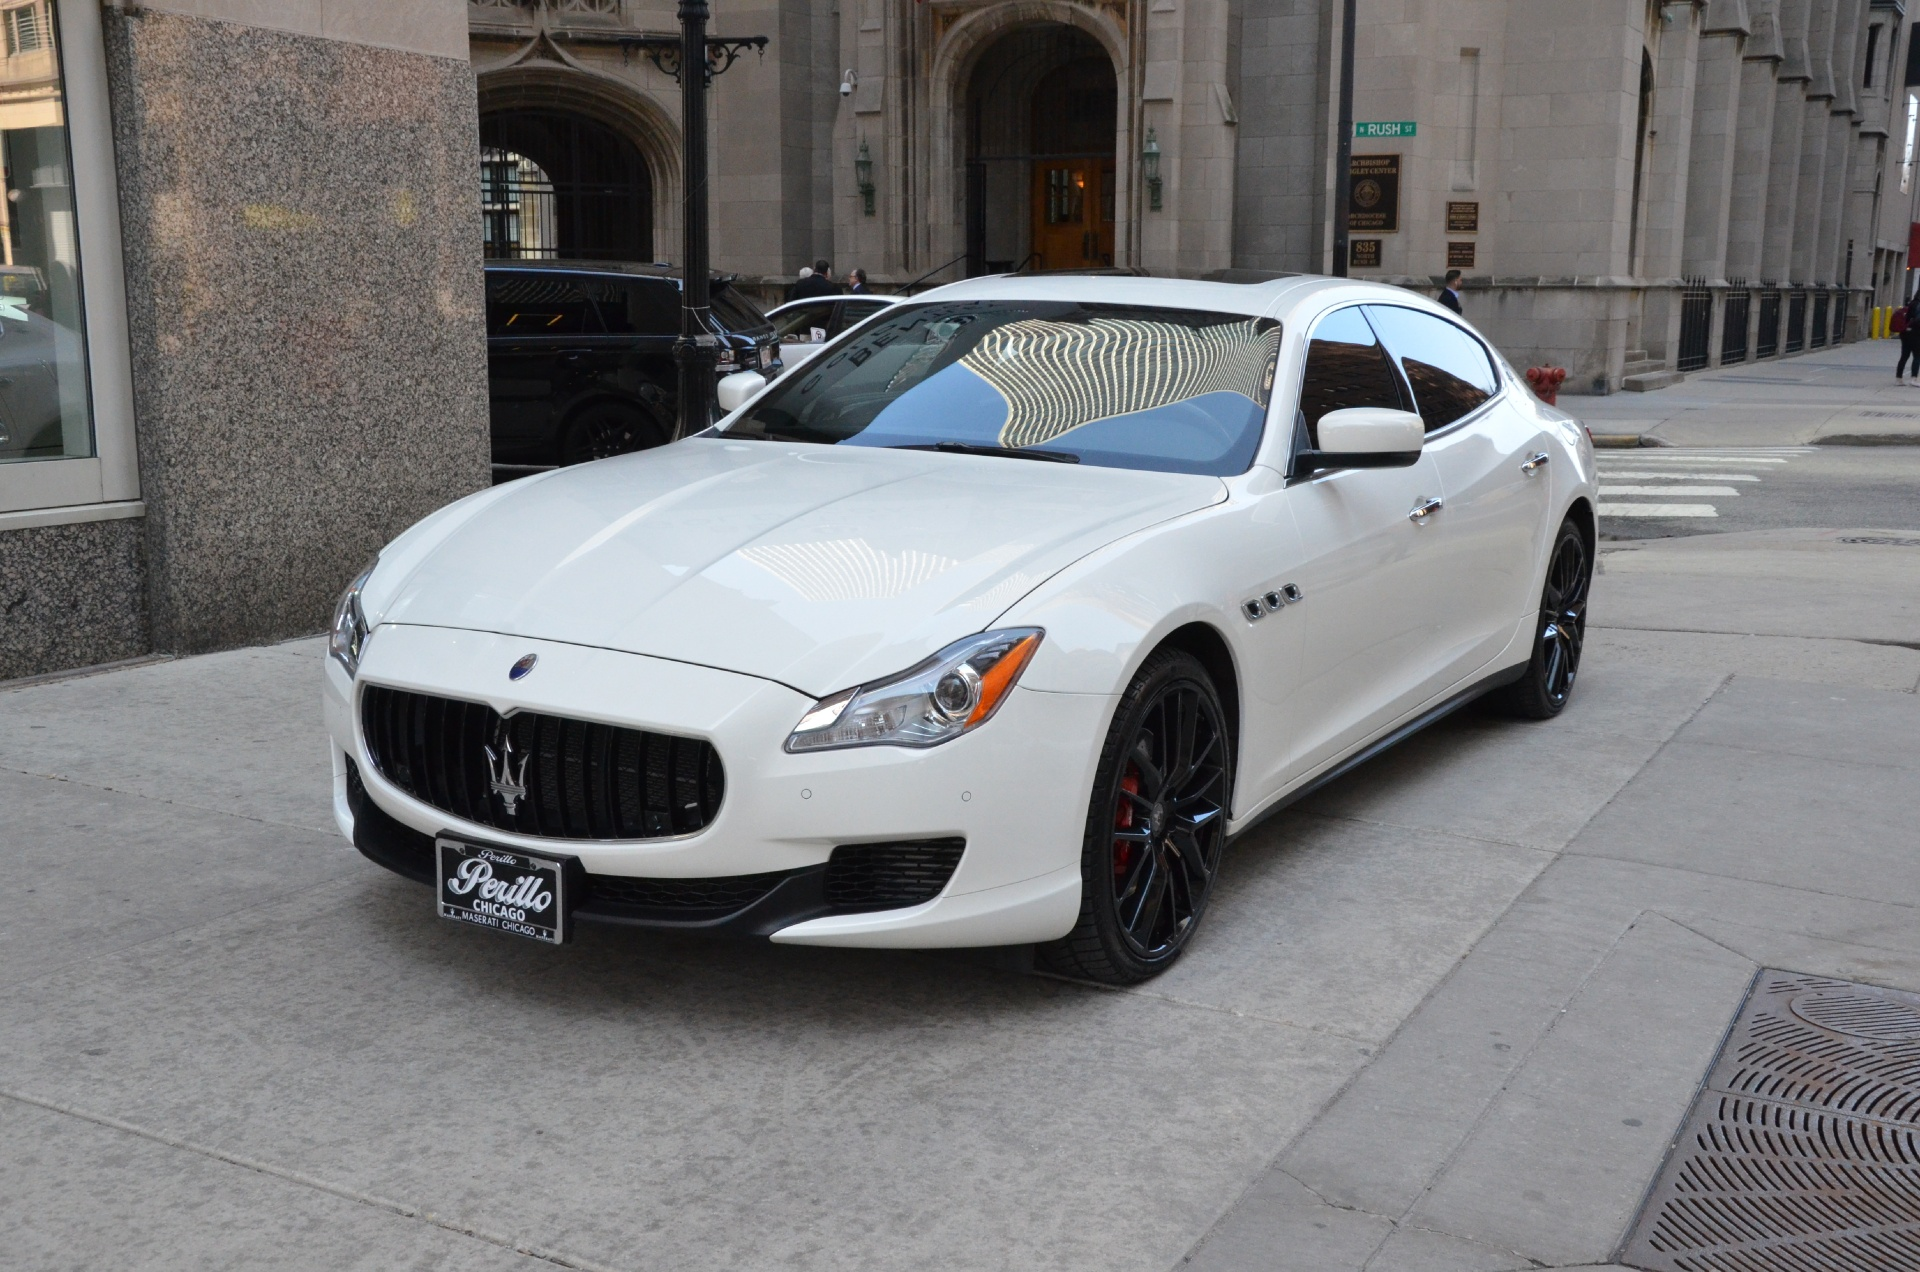 2014 maserati quattroporte sq4 s q4 used bentley used rolls royce used lamborghini used. Black Bedroom Furniture Sets. Home Design Ideas